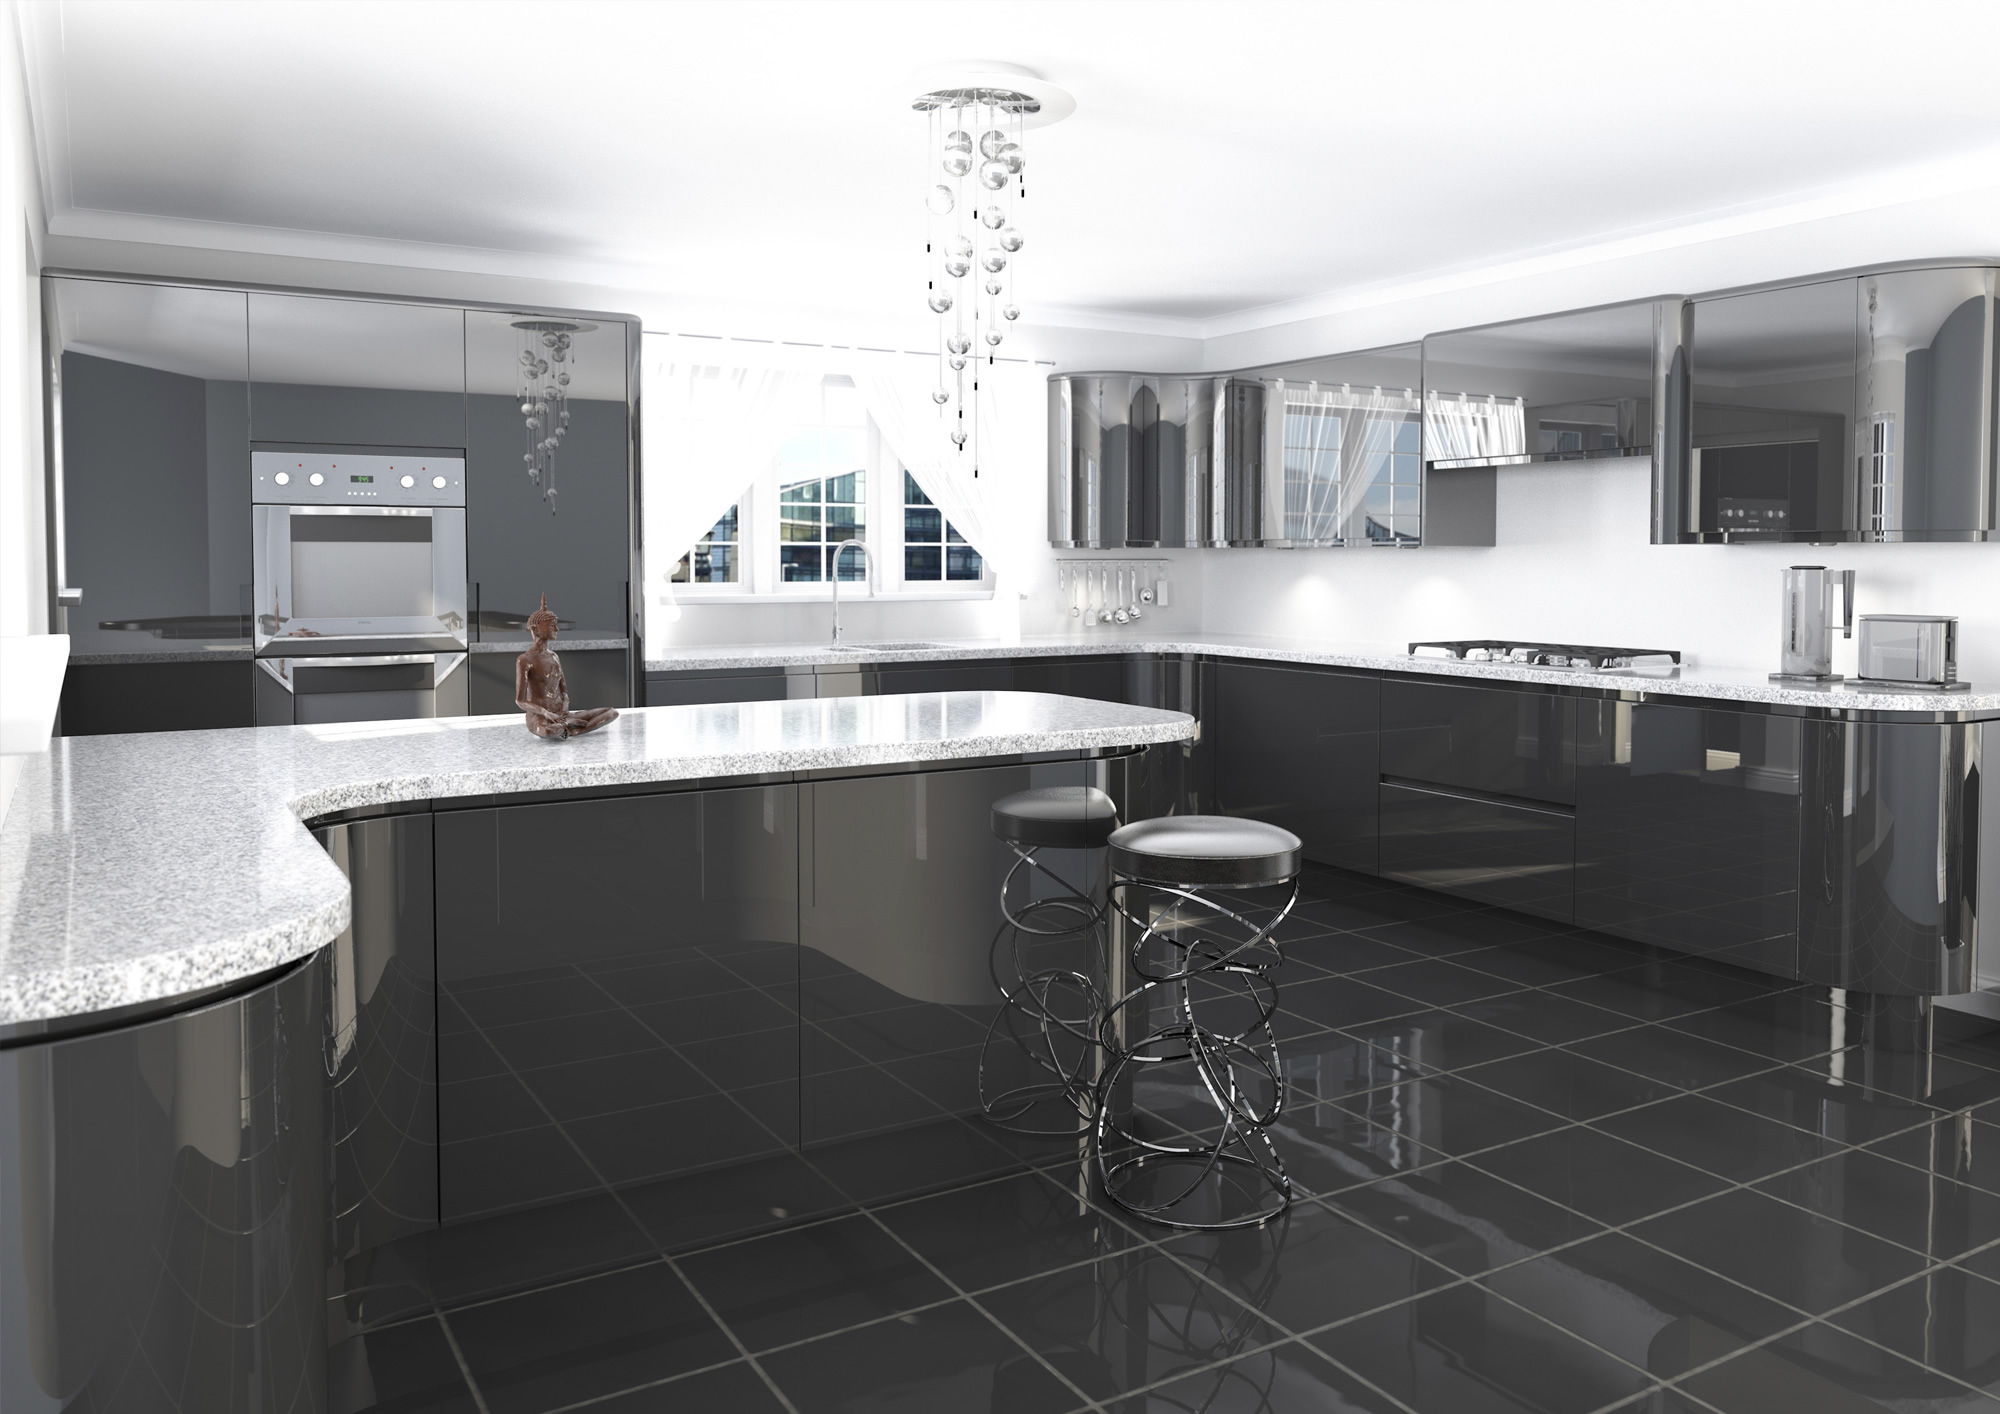 Jazi Gloss Anthracite - Anthracite grey kitchen